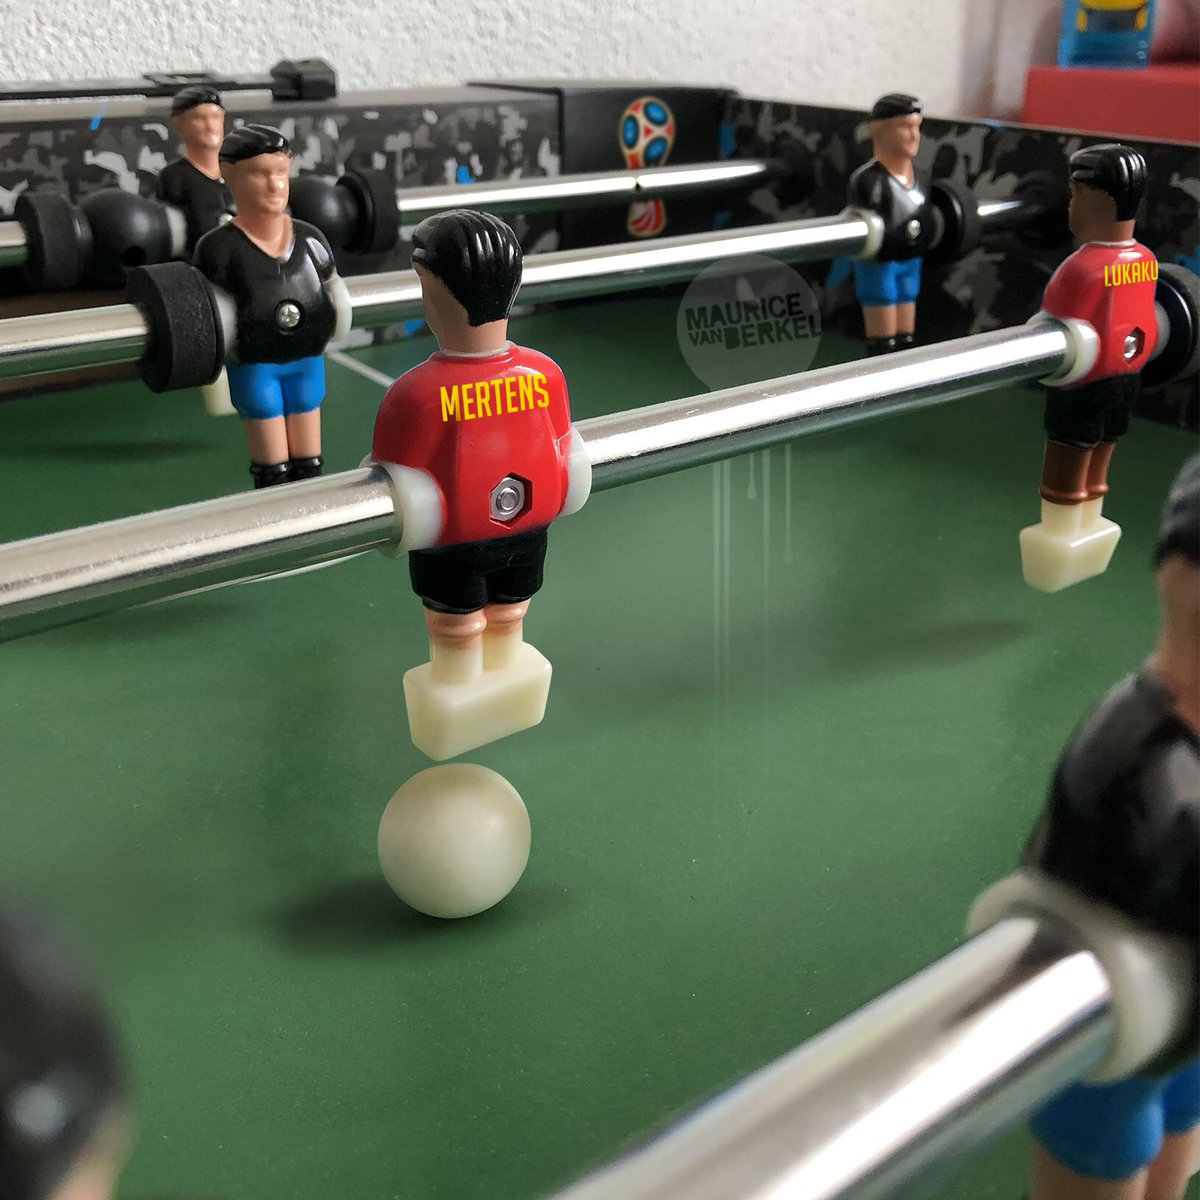 I just bought the Belgium WorldCup table football-set. Think they made it a bit too realistic. #belpan #worldcup